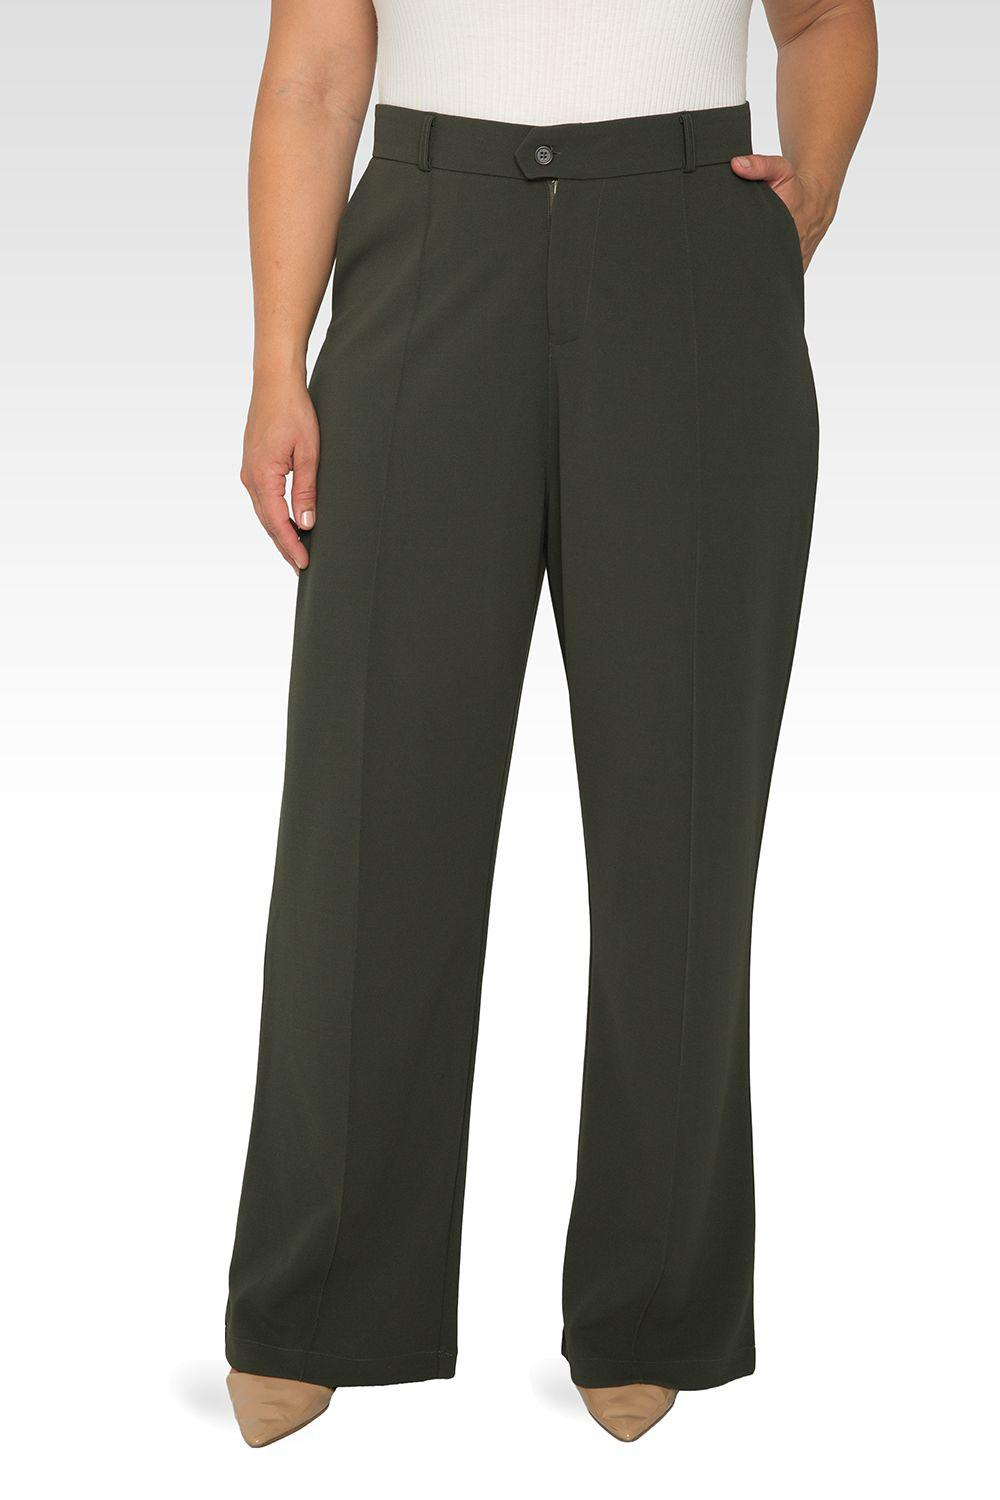 Plus Size Erica Pintuck Stretch Crepe Wide Leg Trouser - Olive